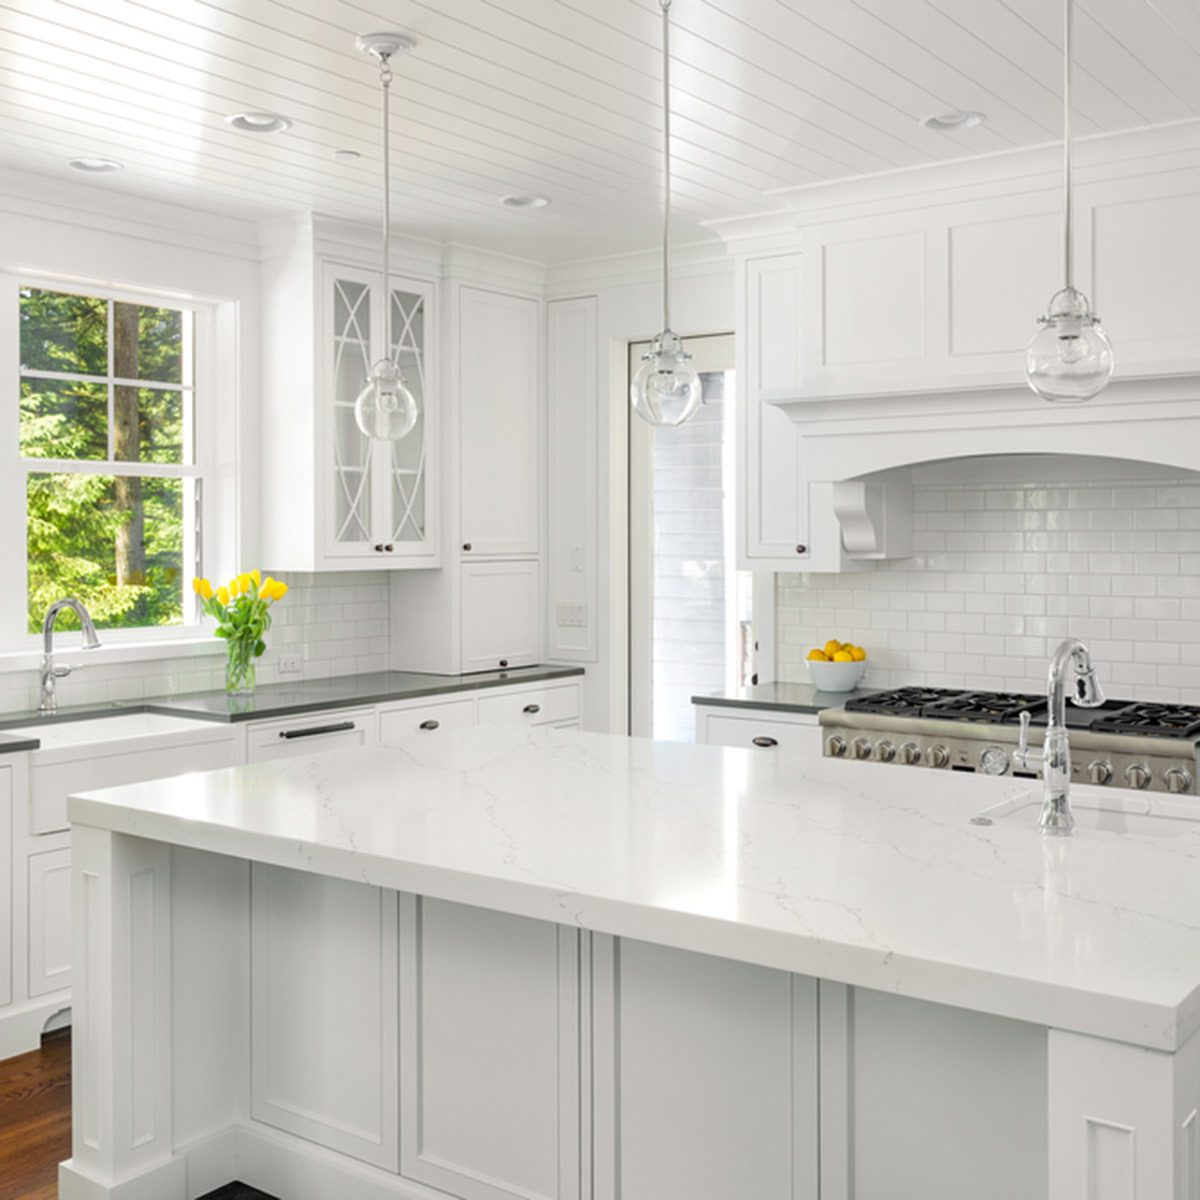 15 Stunning Gray Kitchens With Images: 15 Kitchen Color Schemes For Your Inner Gourmet